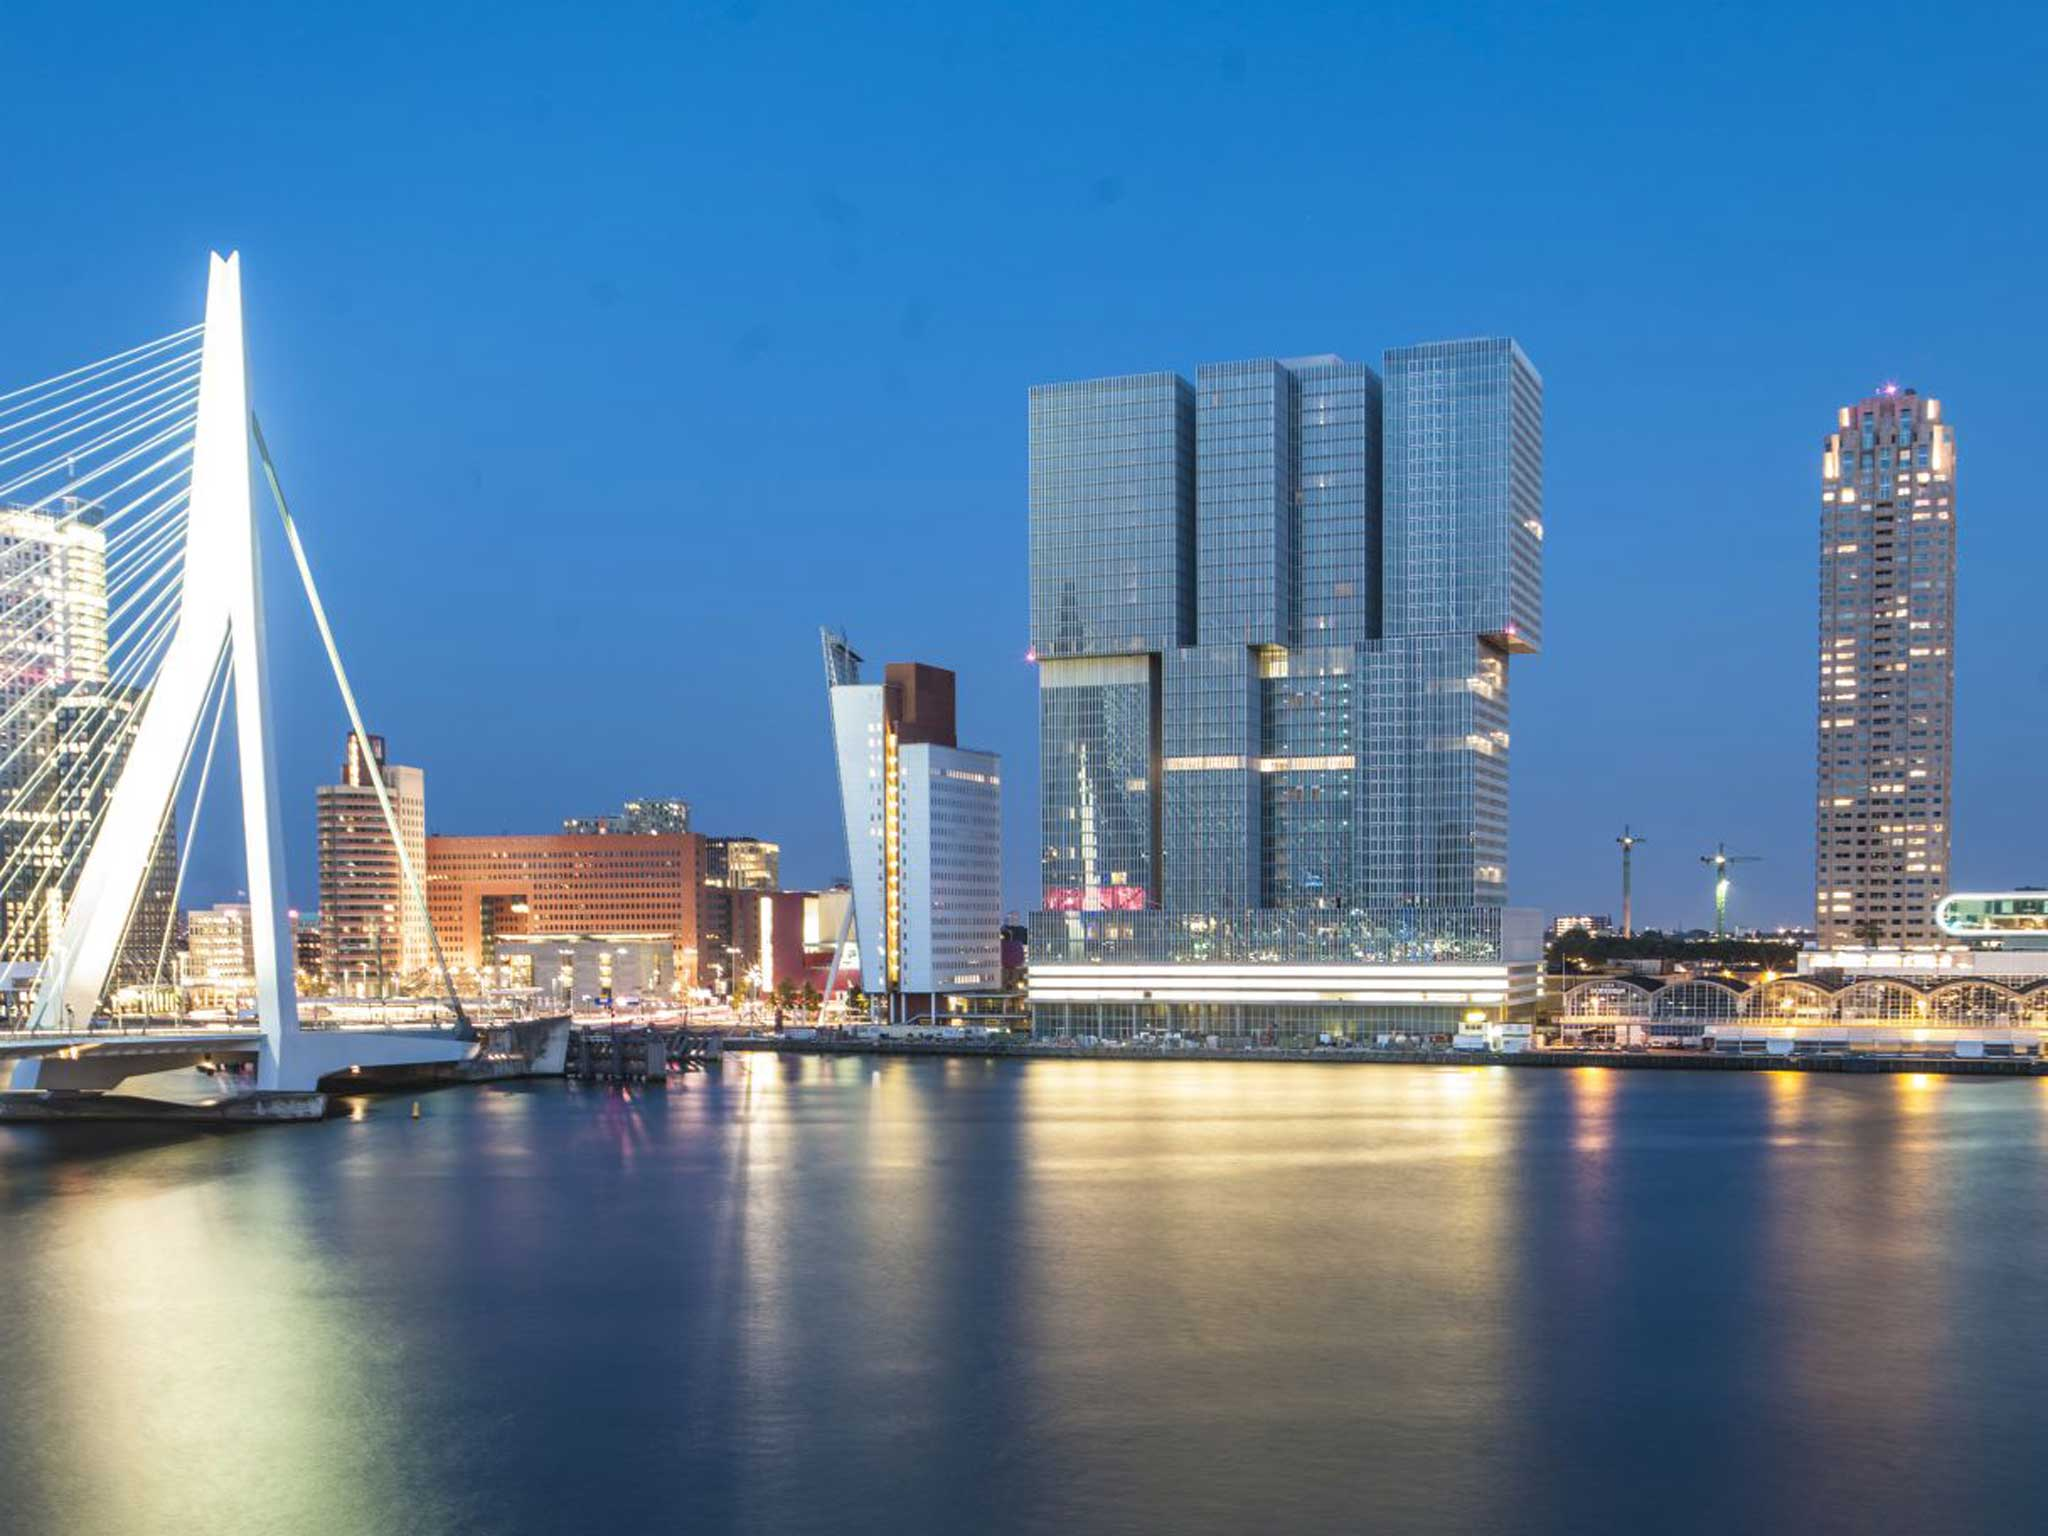 Travel by numbers: Rotterdam - Vertical city hits new heights in industrial-chic design | The Independentindependent_brand_ident_LOGOUntitled